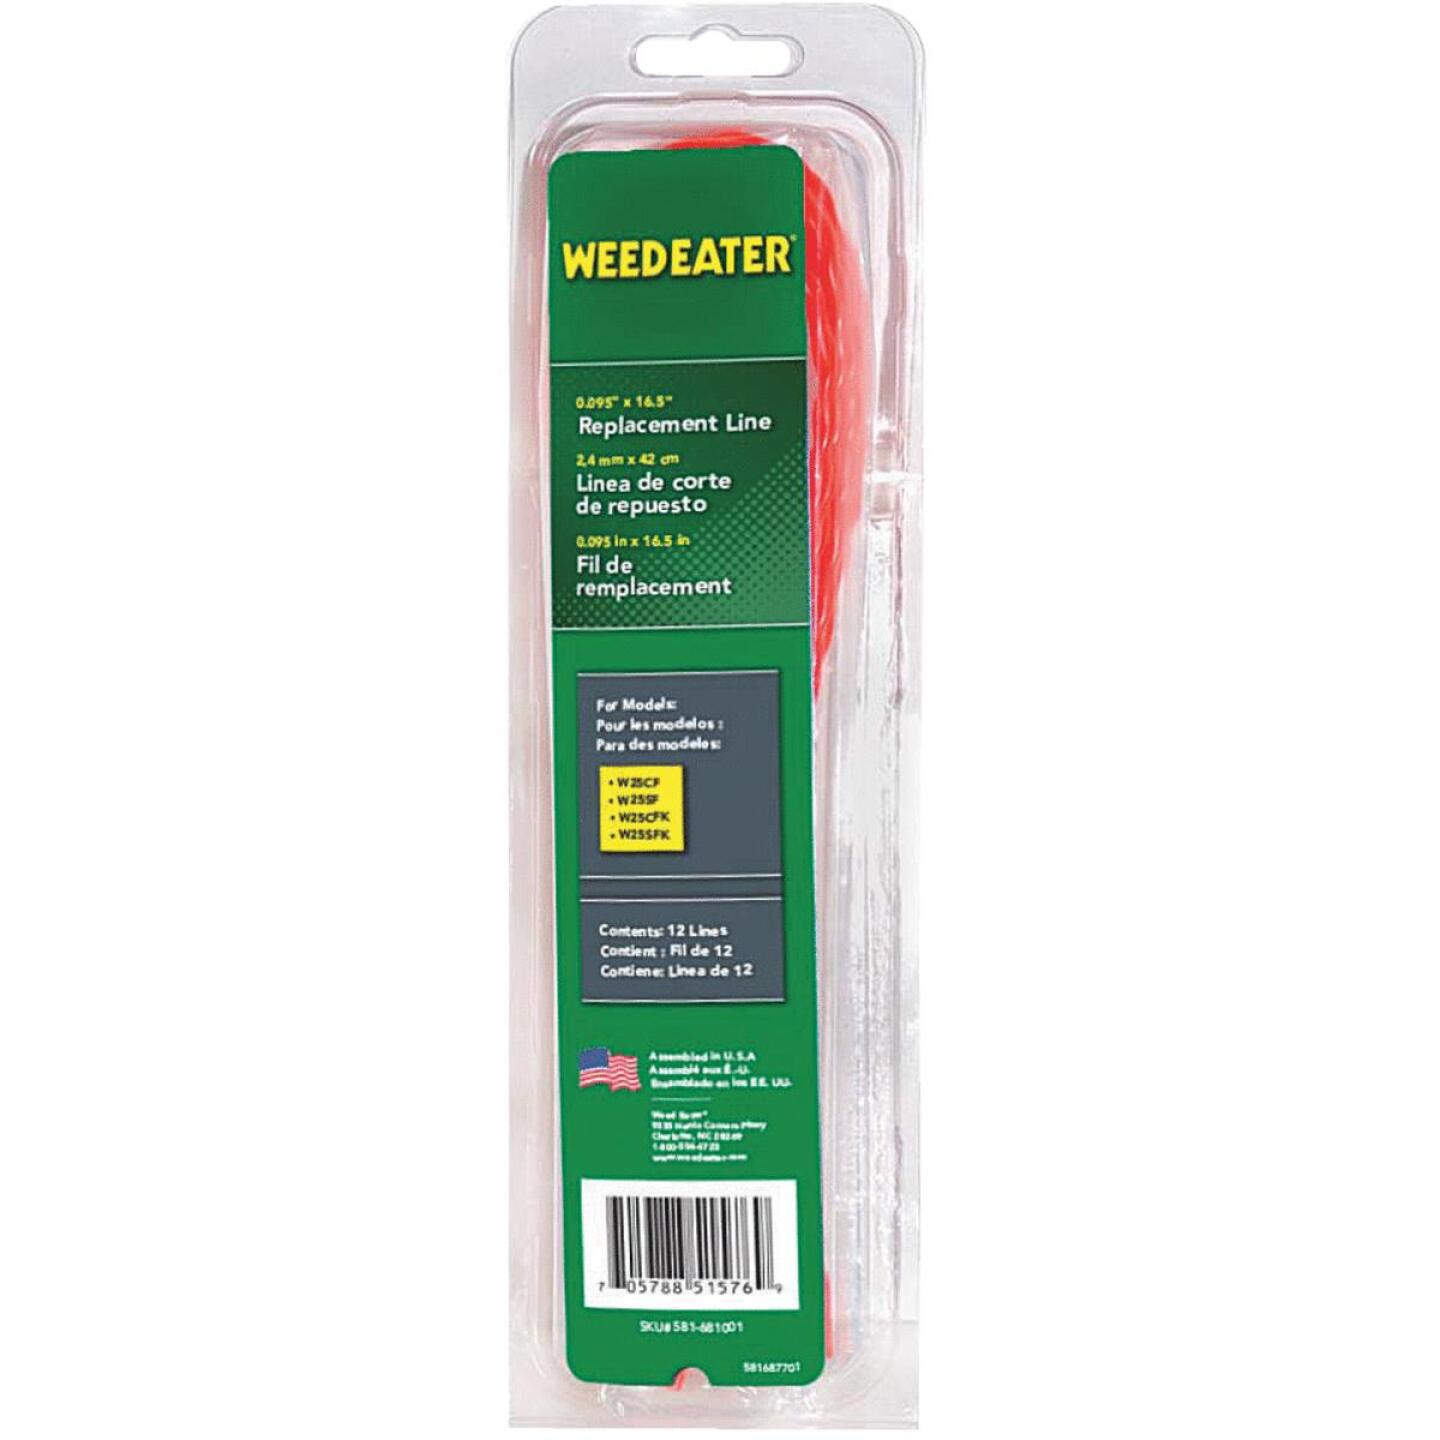 Weedeater 0.095 In. Dia. x 16.5 In. L. Round Pre-Cut Trimmer Line (12-Piece) Image 1